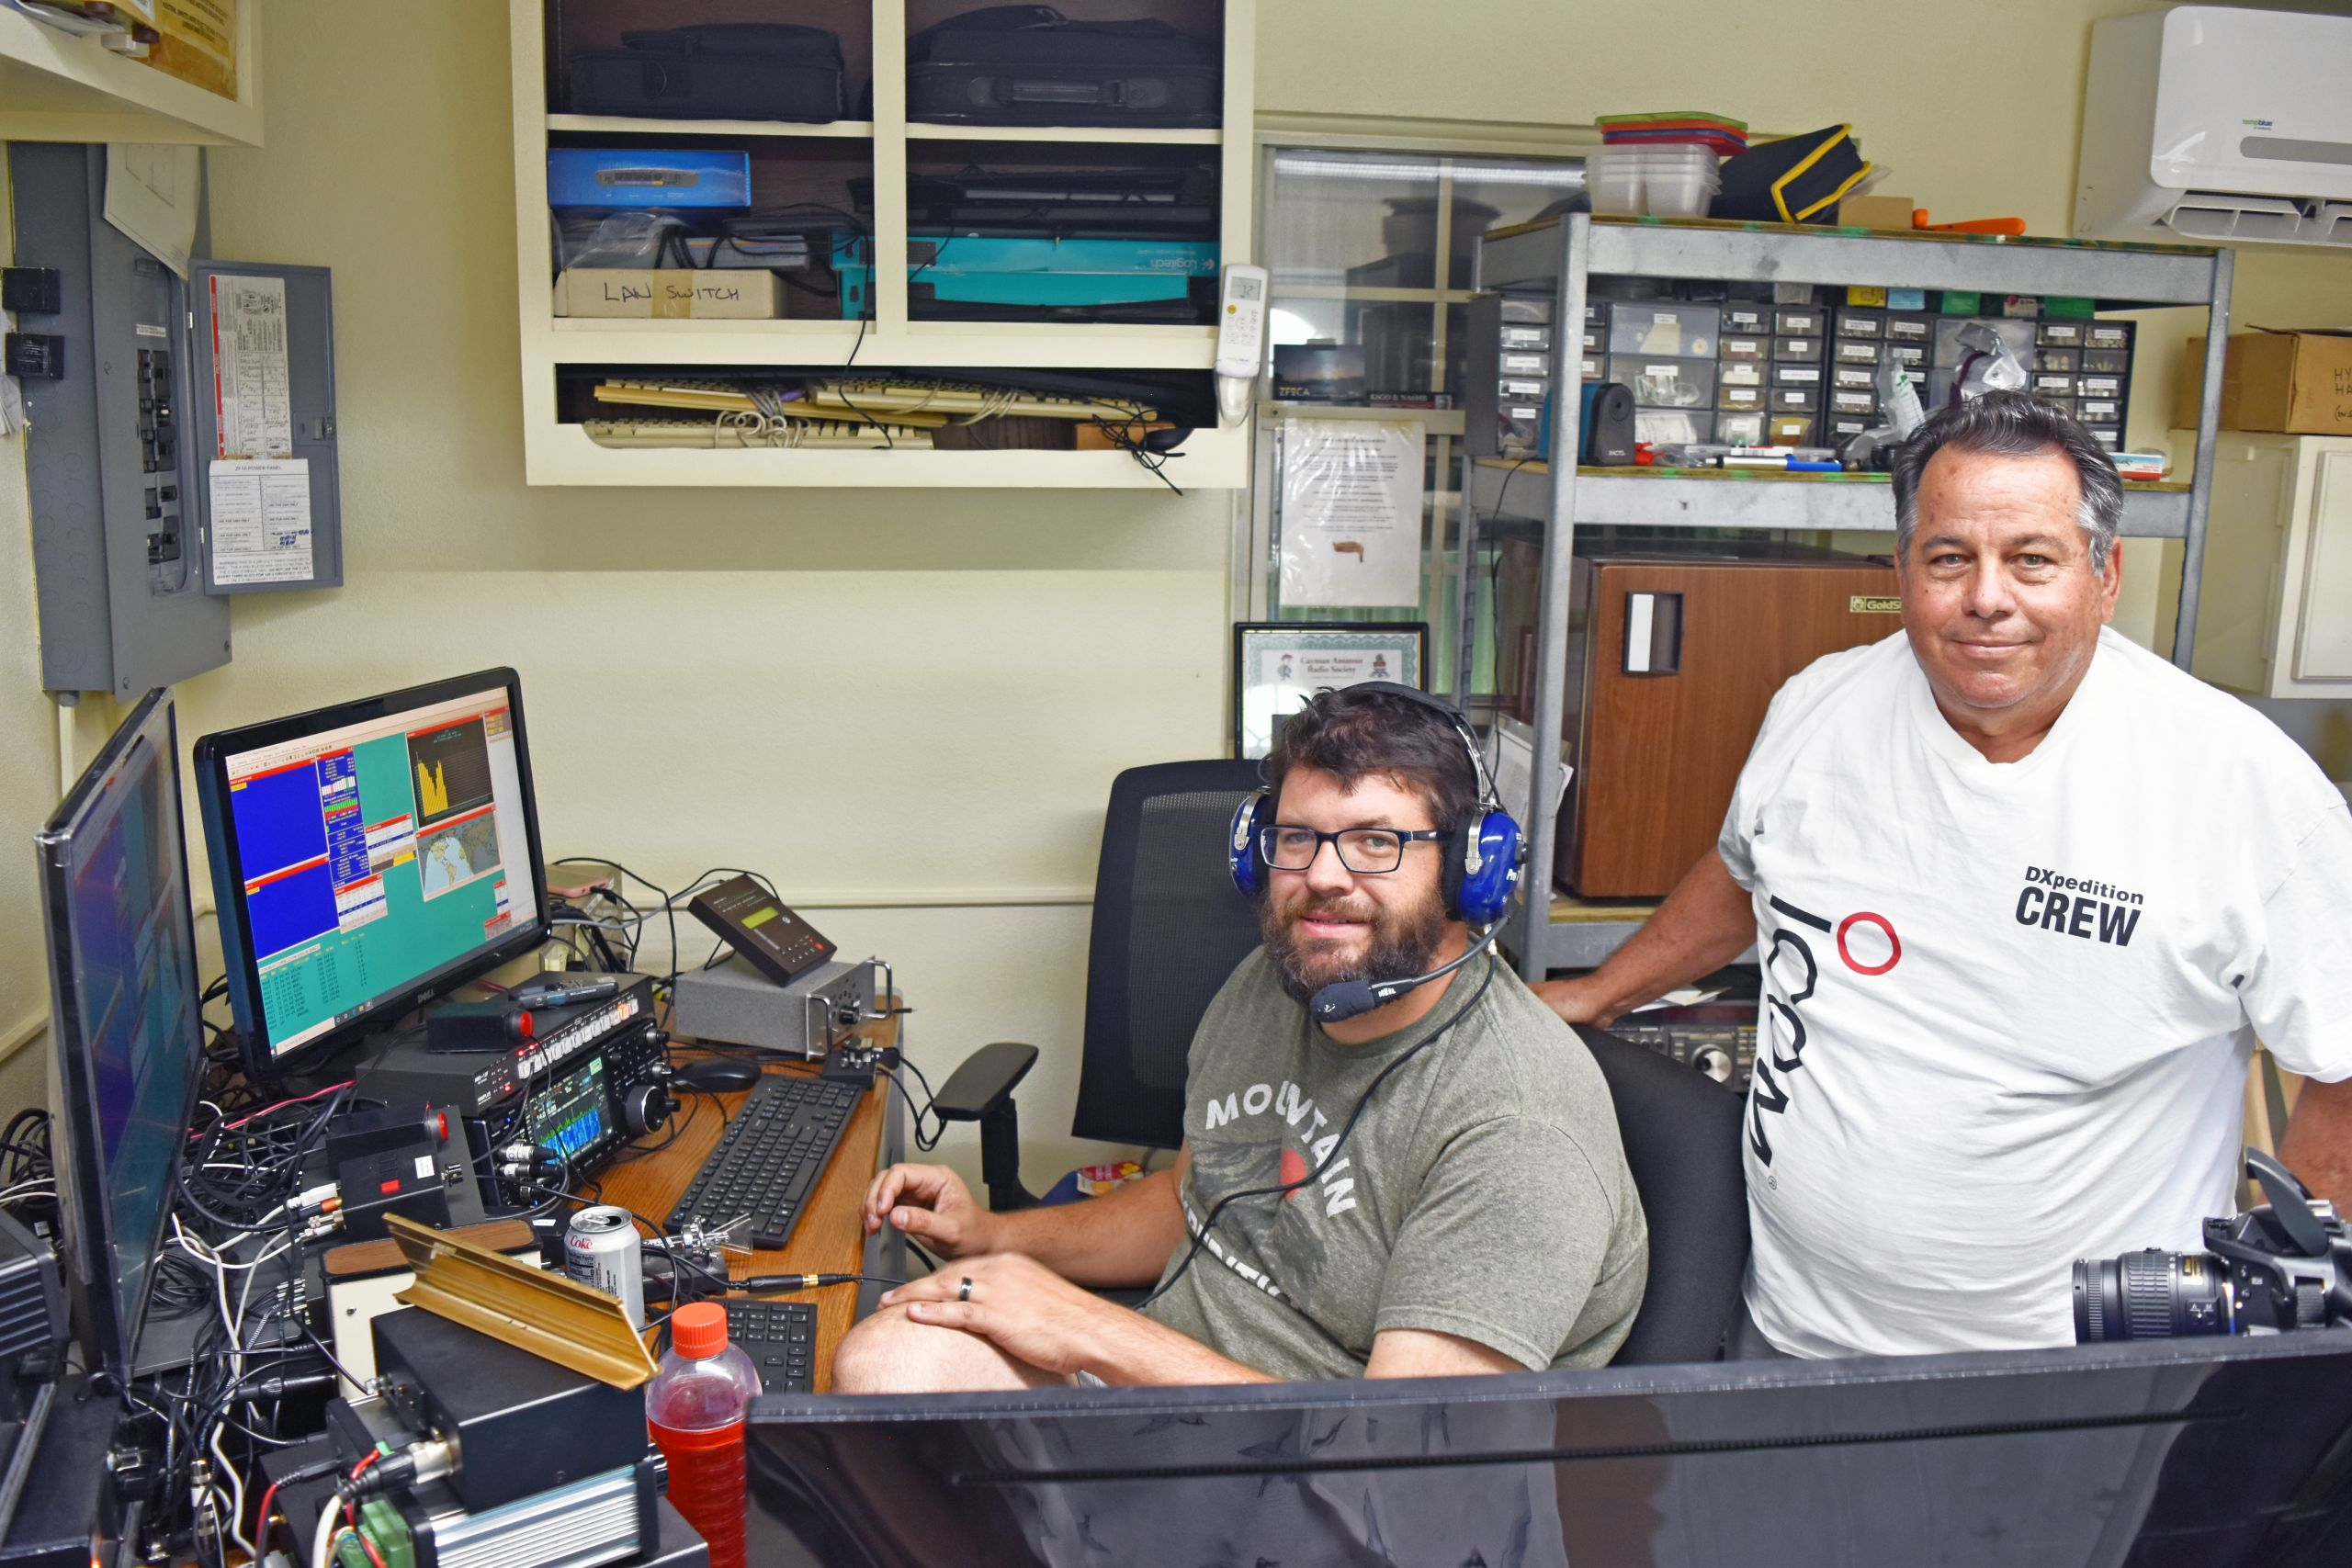 ham radio operators compete for two days straight cayman